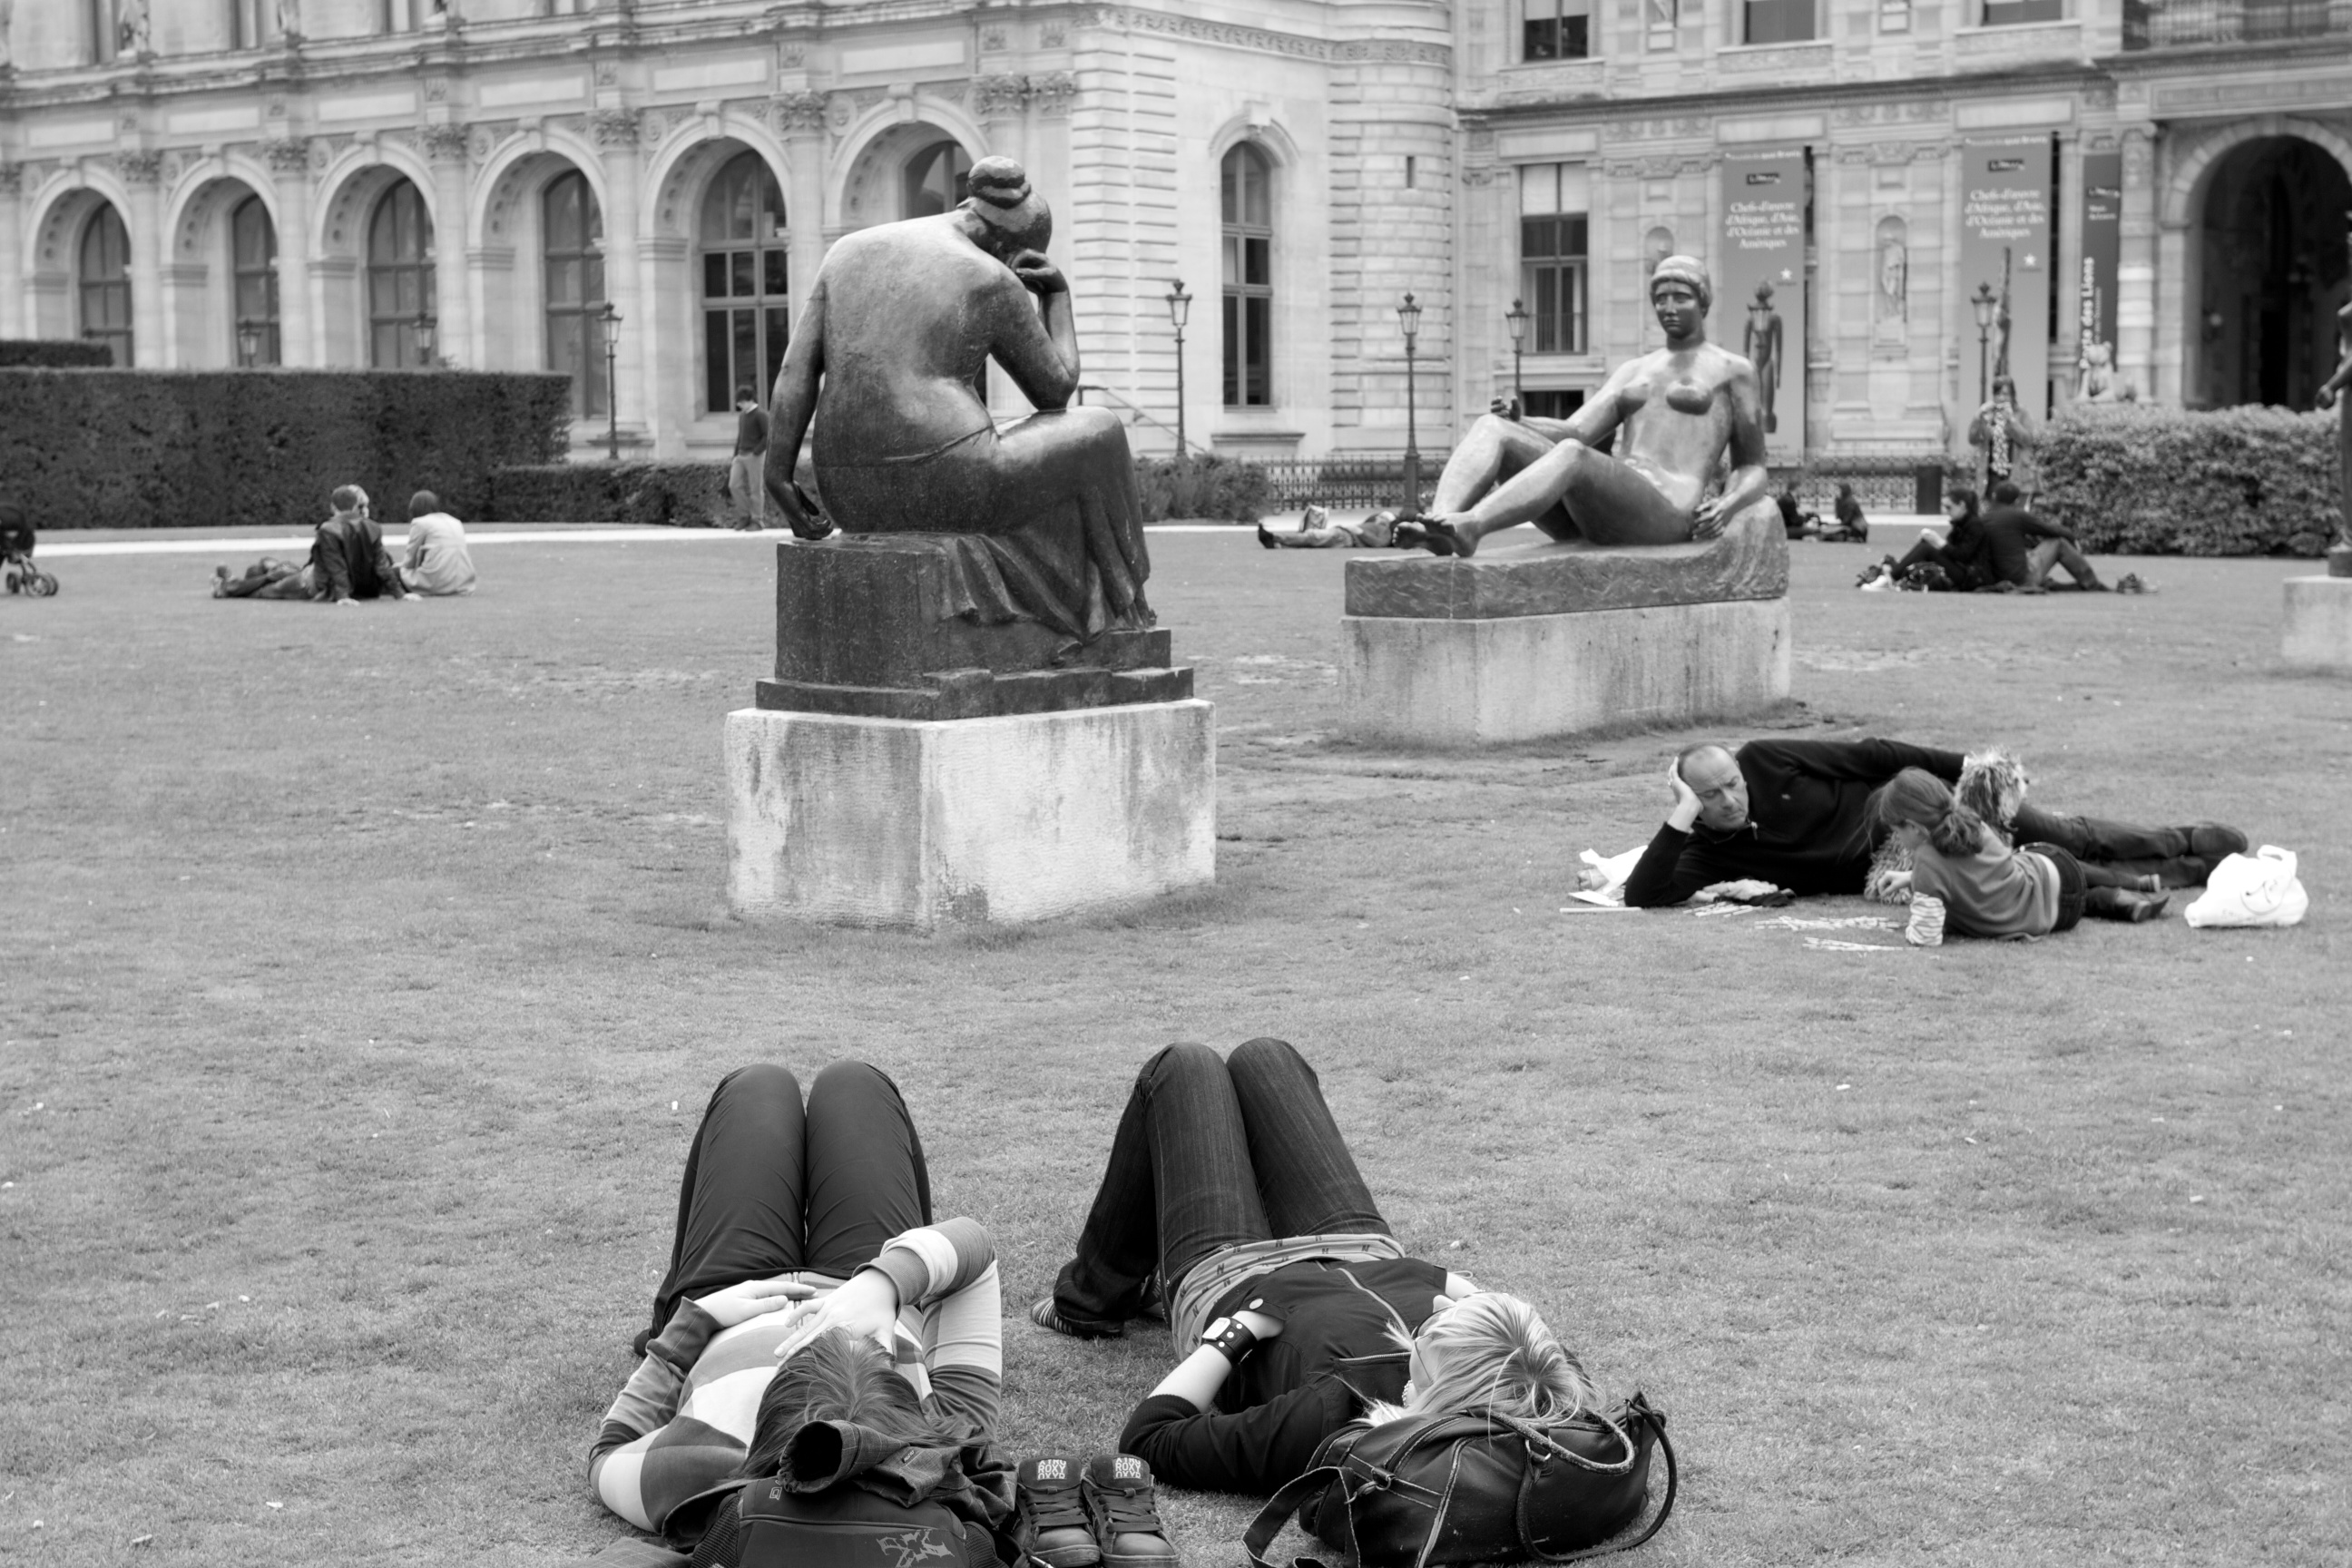 Statues on the lawn, the Louvre